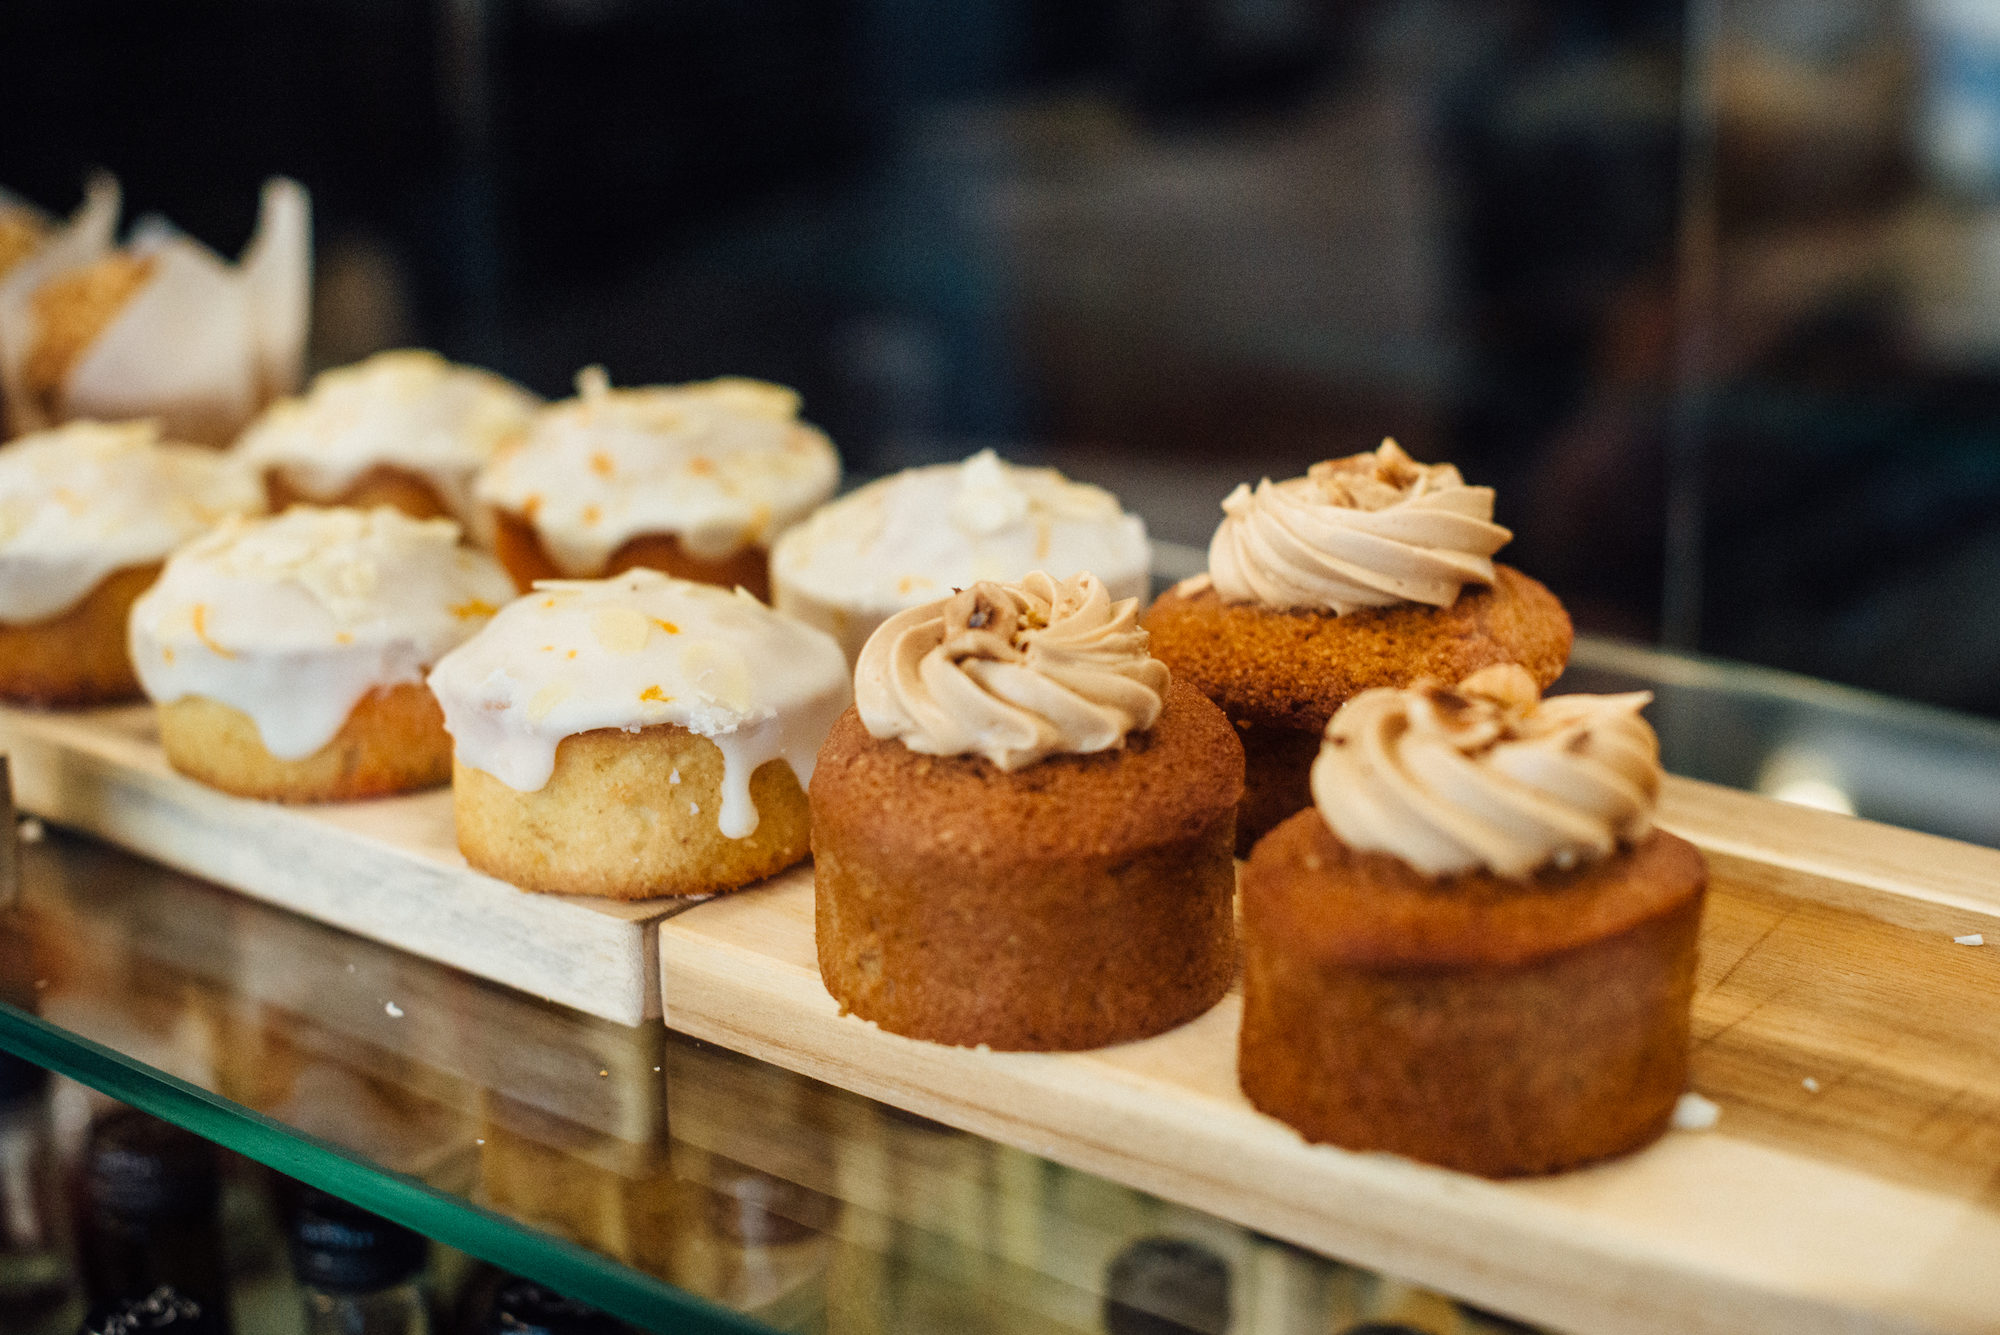 Learning French is easy, especially when you're motivated by being able to order all the creamy cakes you want at Paris bakeries.